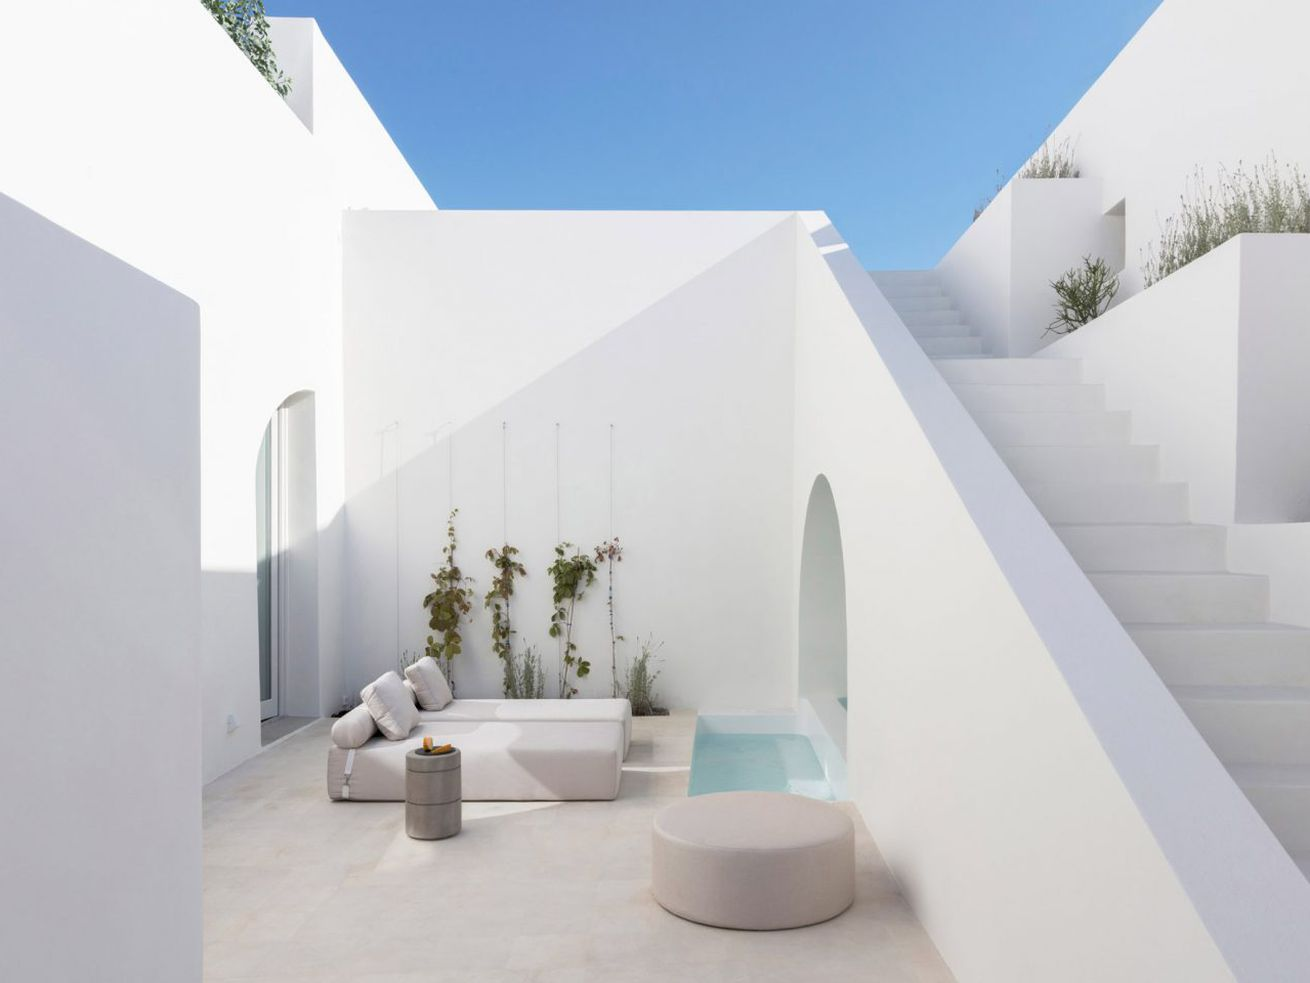 Santorini cave house converted into dreamy modern retreats